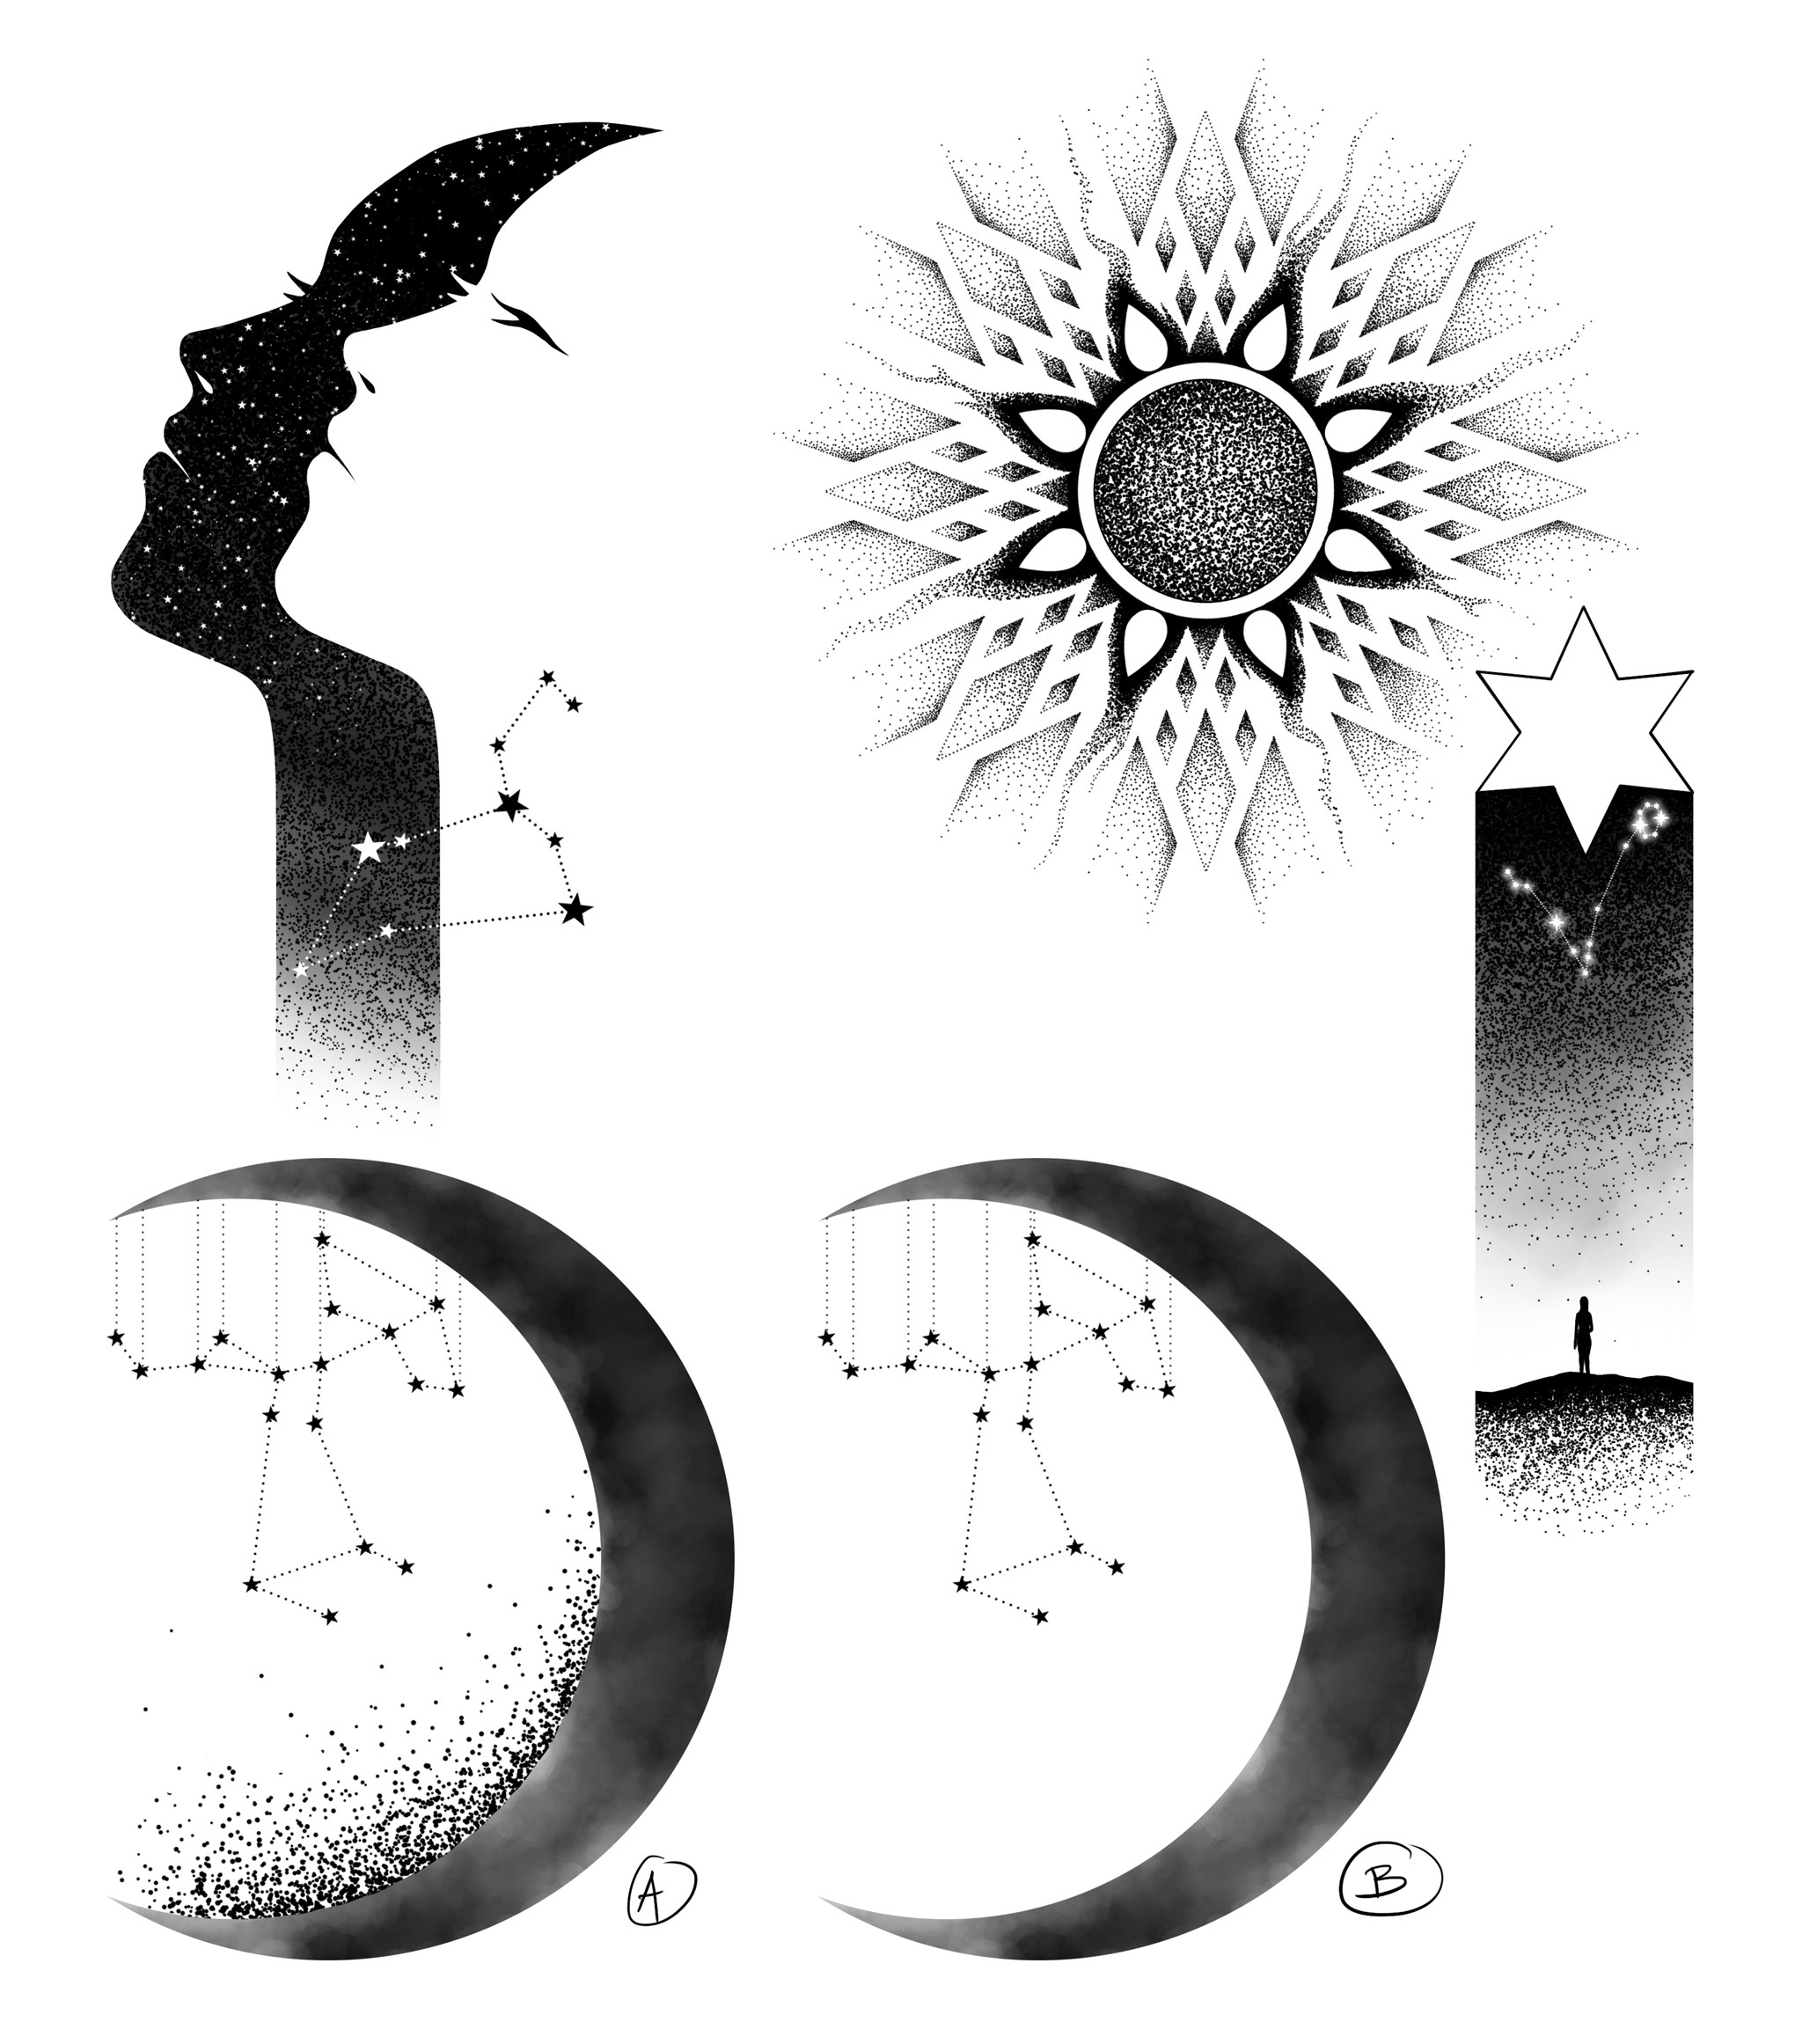 Celestial Sky with astrological imagery.  Focus on line, some dotwork, black only.